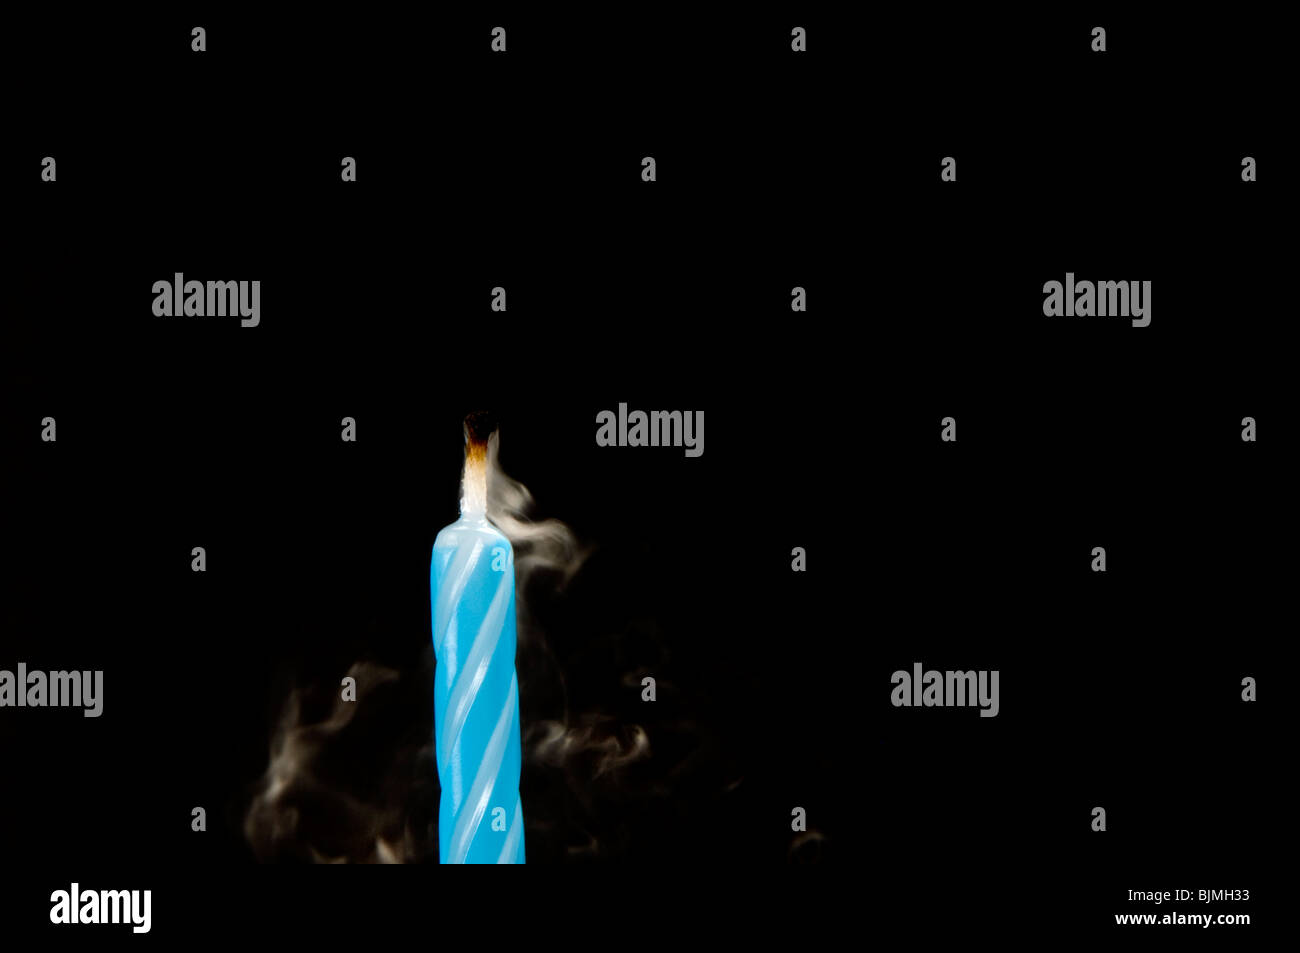 birthday candles - Stock Image